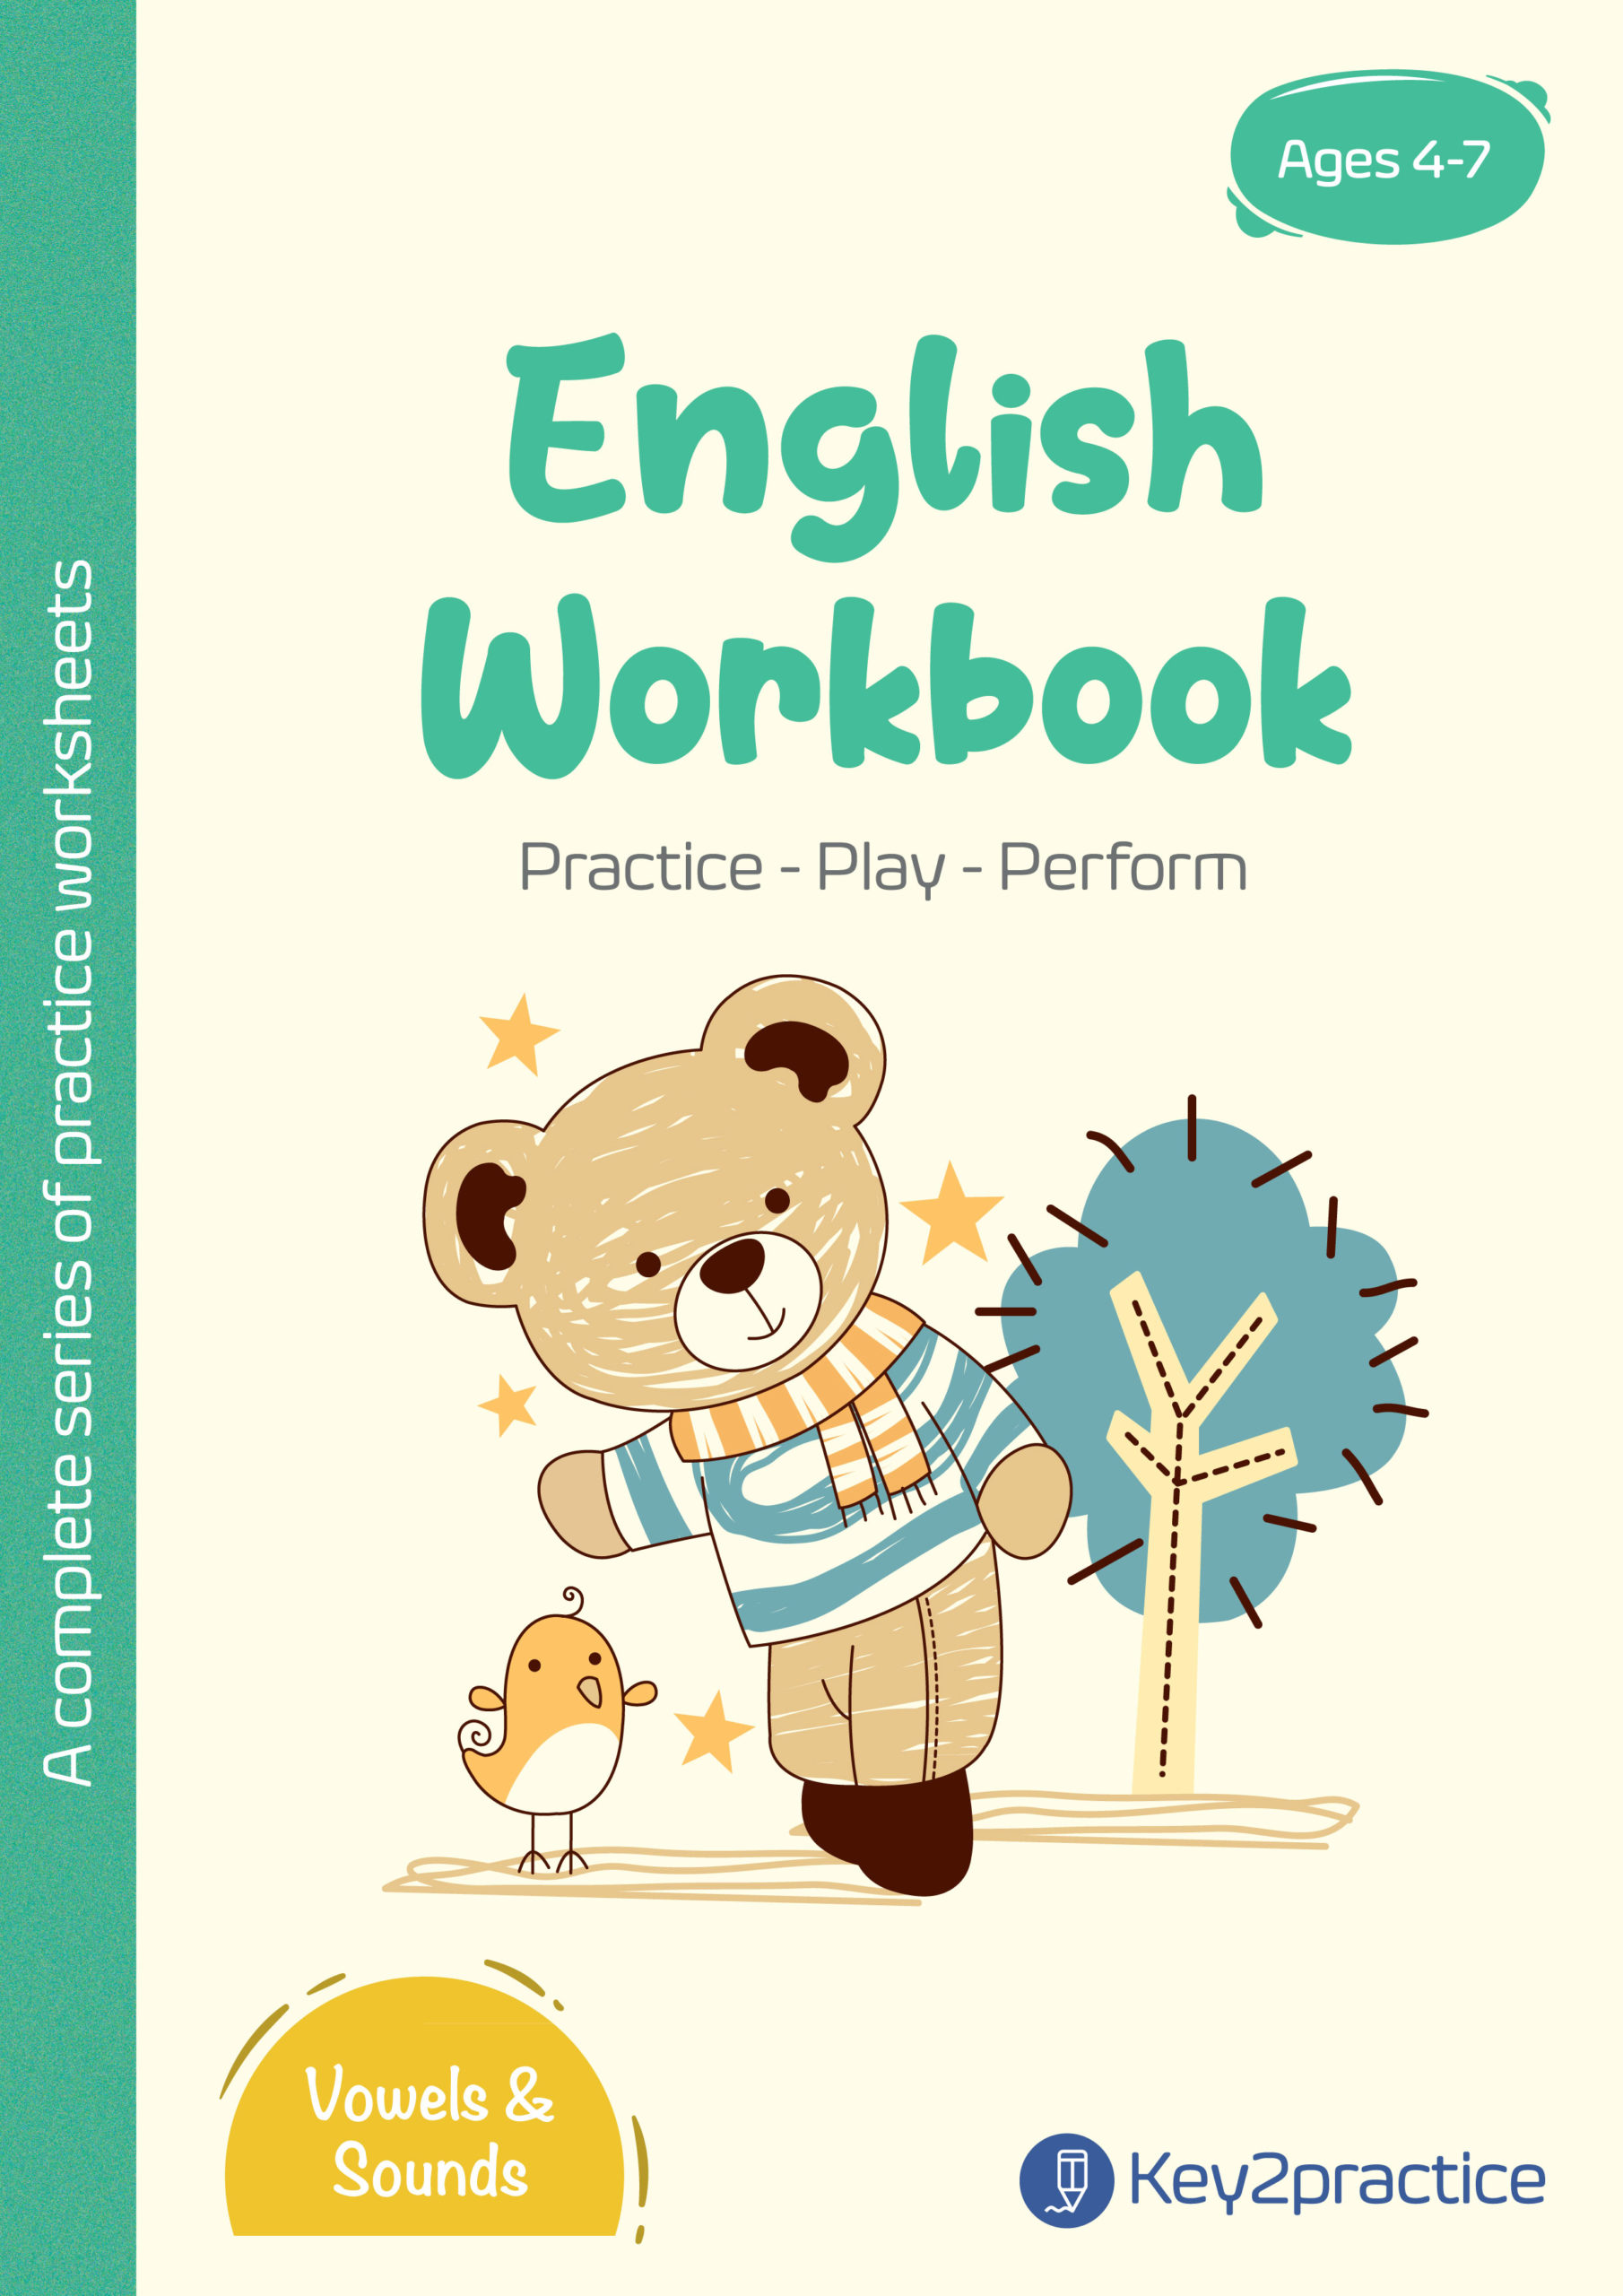 English Worksheets Grade 1 Workbook Vowels Amp Sounds